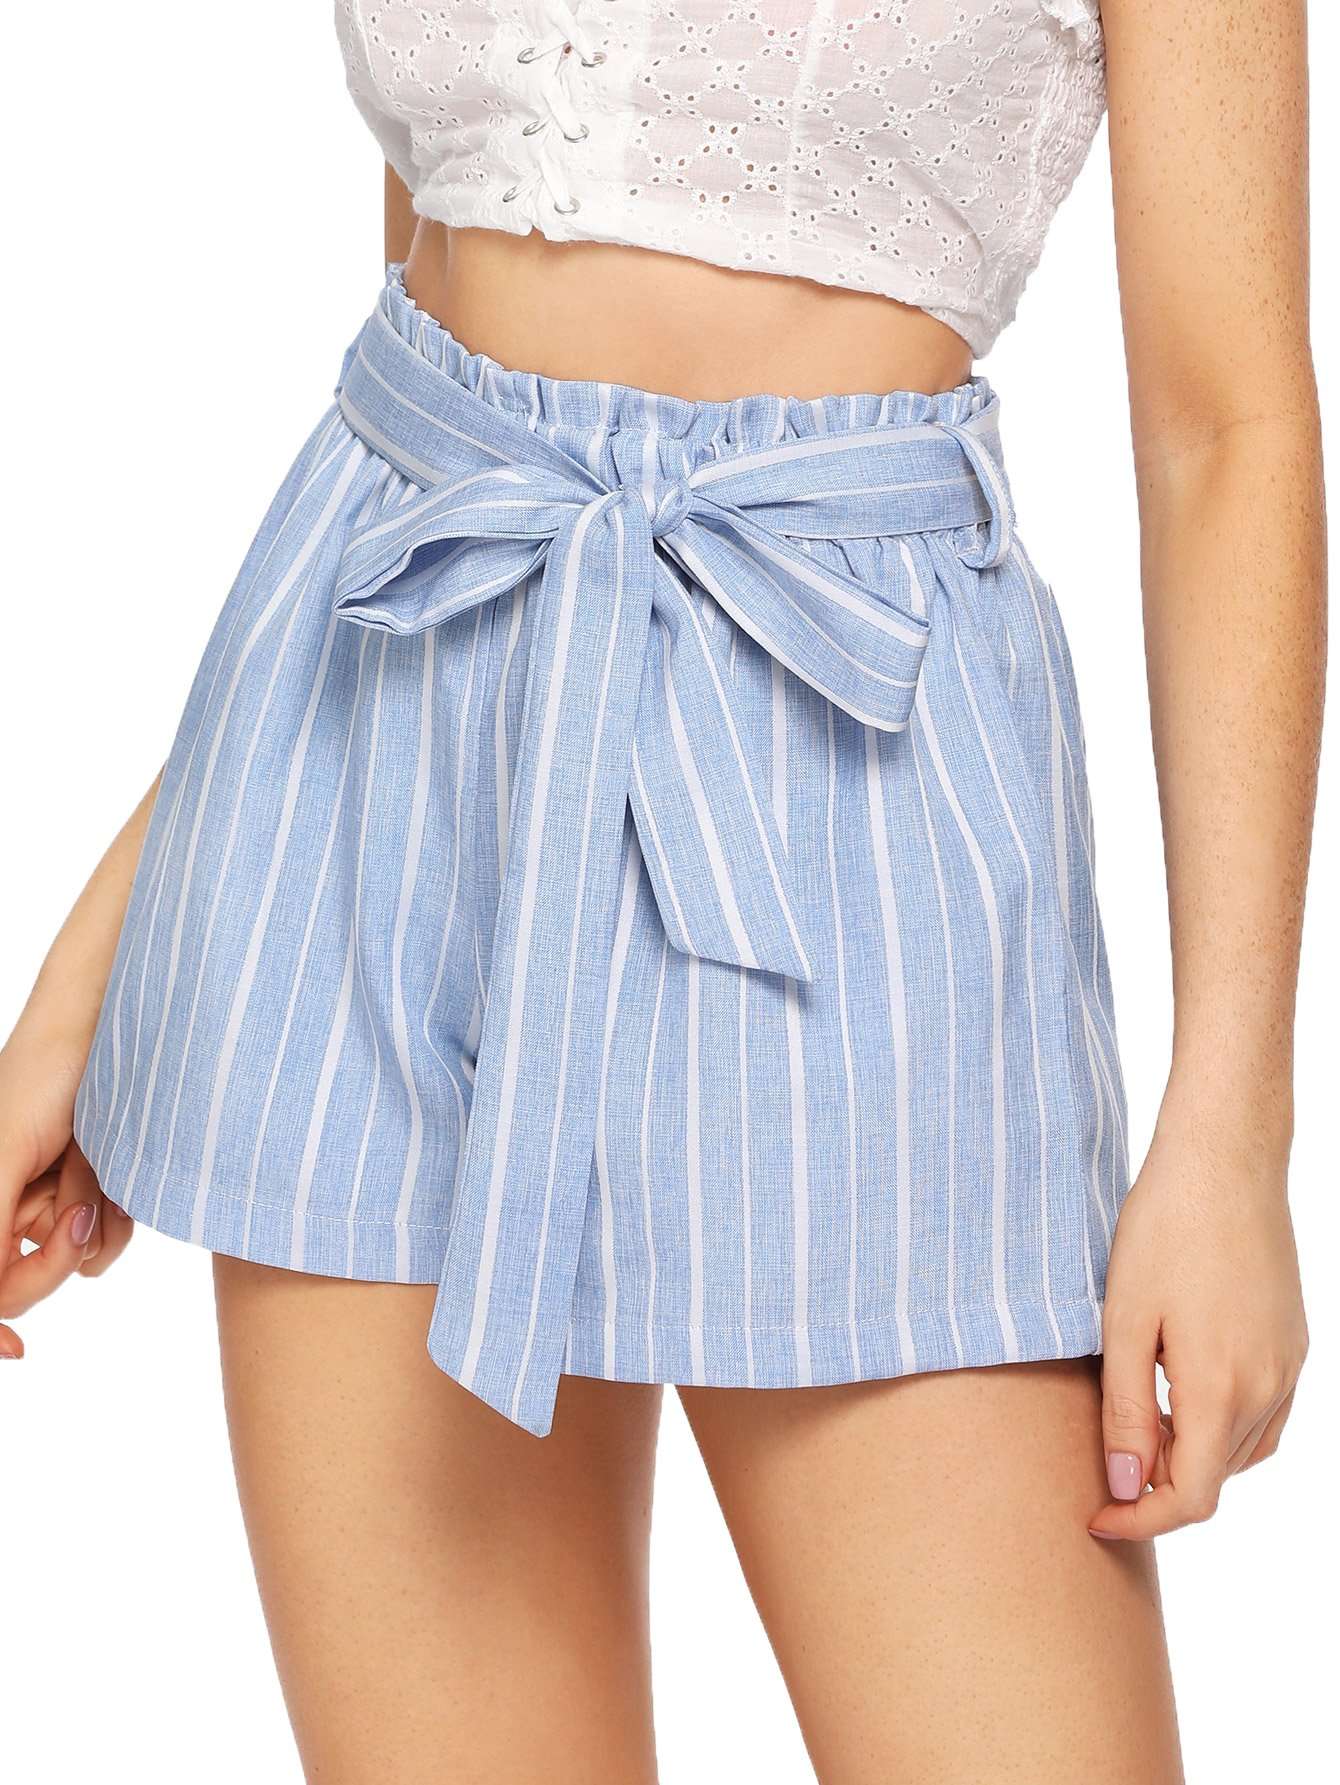 SweatyRocks Women's Casual Elastic Waist Striped Summer Beach Shorts with Pockets (Medium, Light Blue)